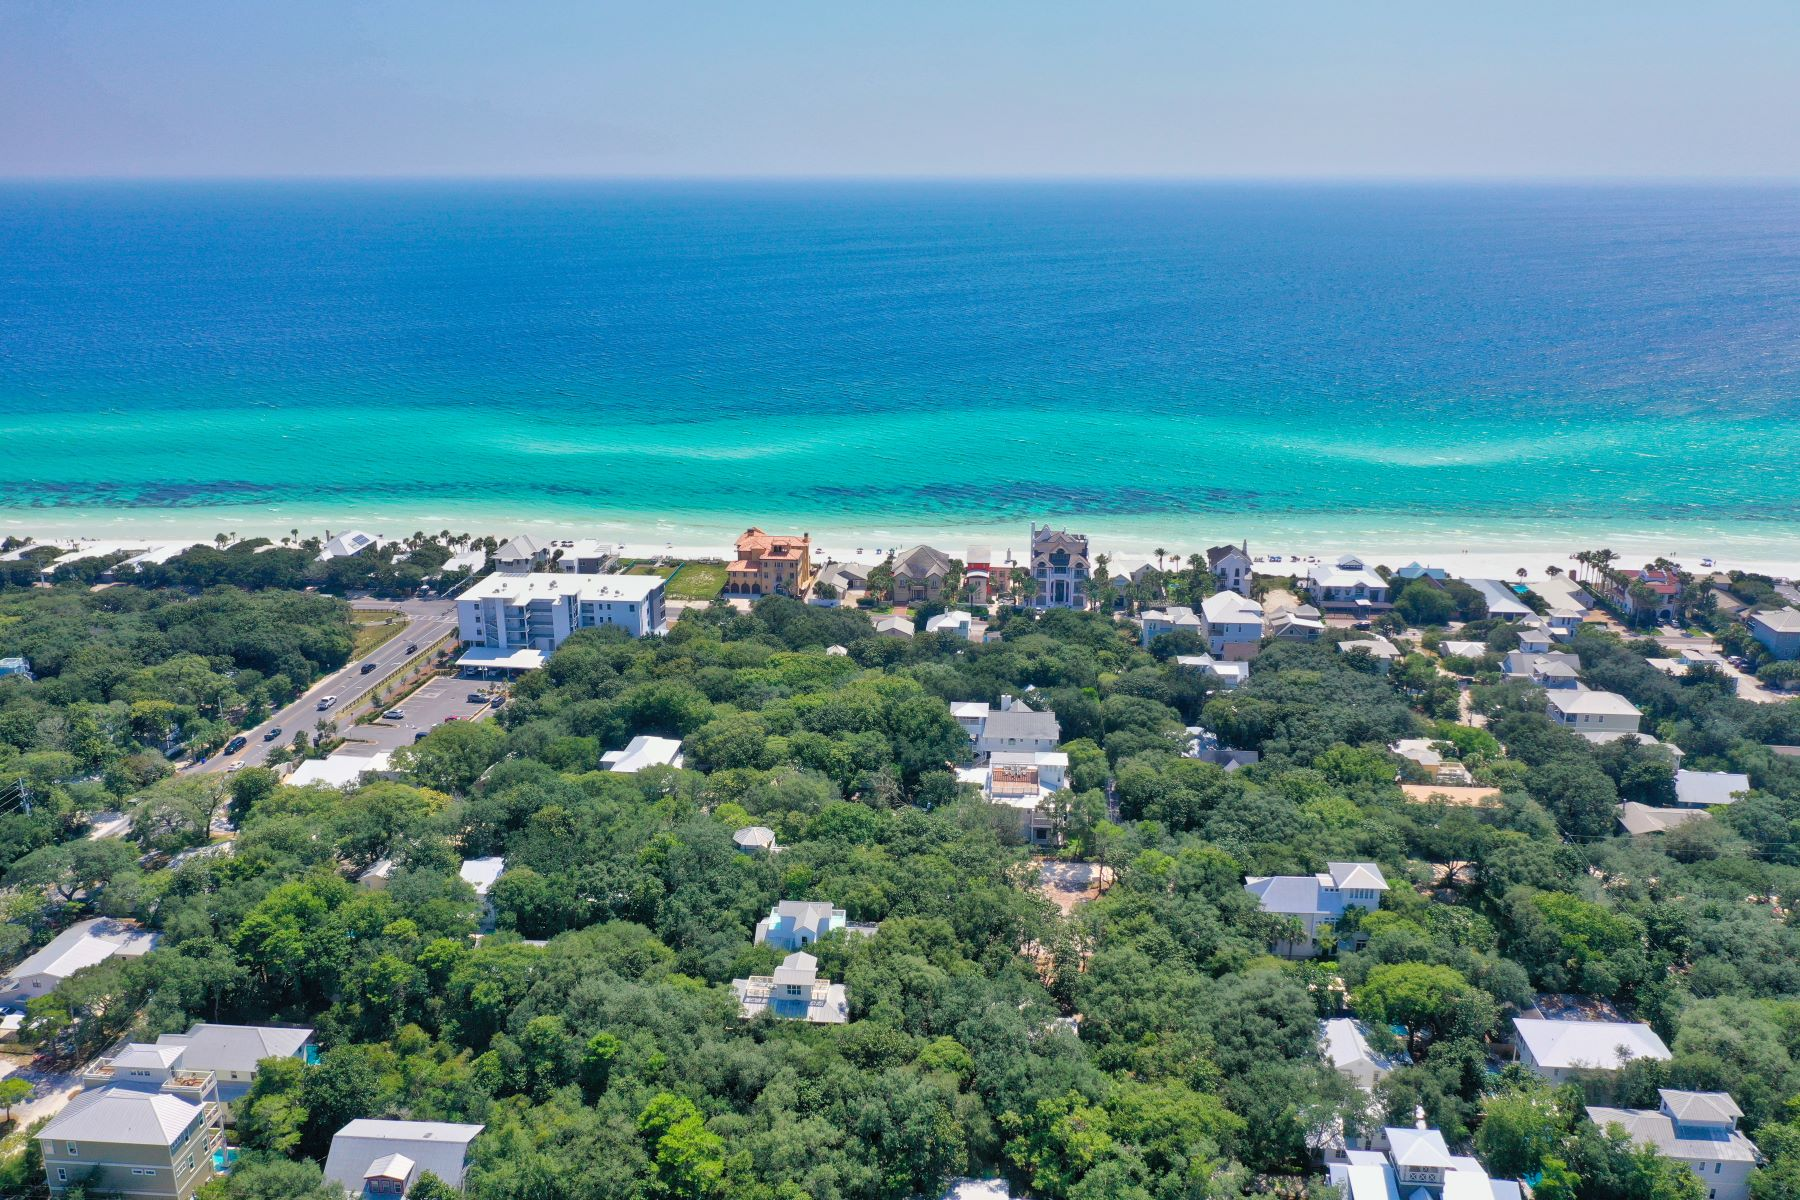 Property for Sale at Opportunity To Build In Old Seagrove 122 Live Oak Street, Santa Rosa Beach, Florida 32459 United States